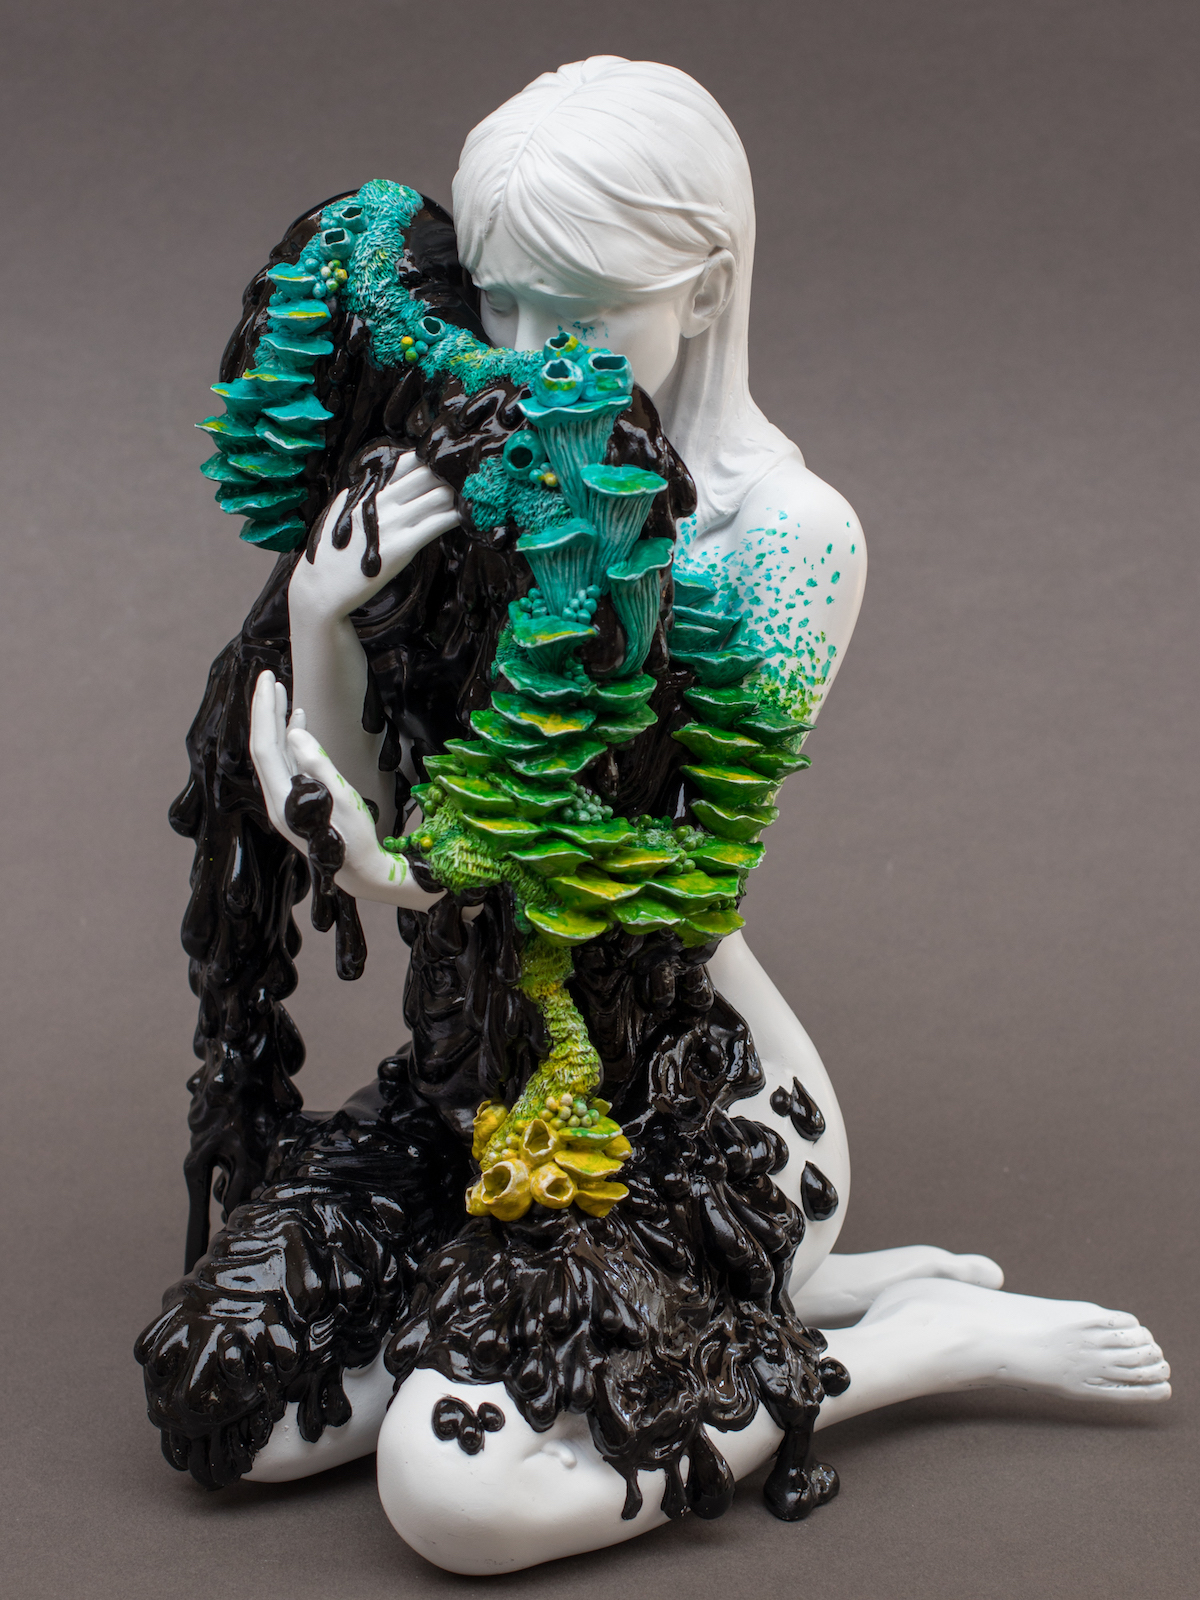 Surreal Sculptures by Miles Johnston and Stephanie Kilgast